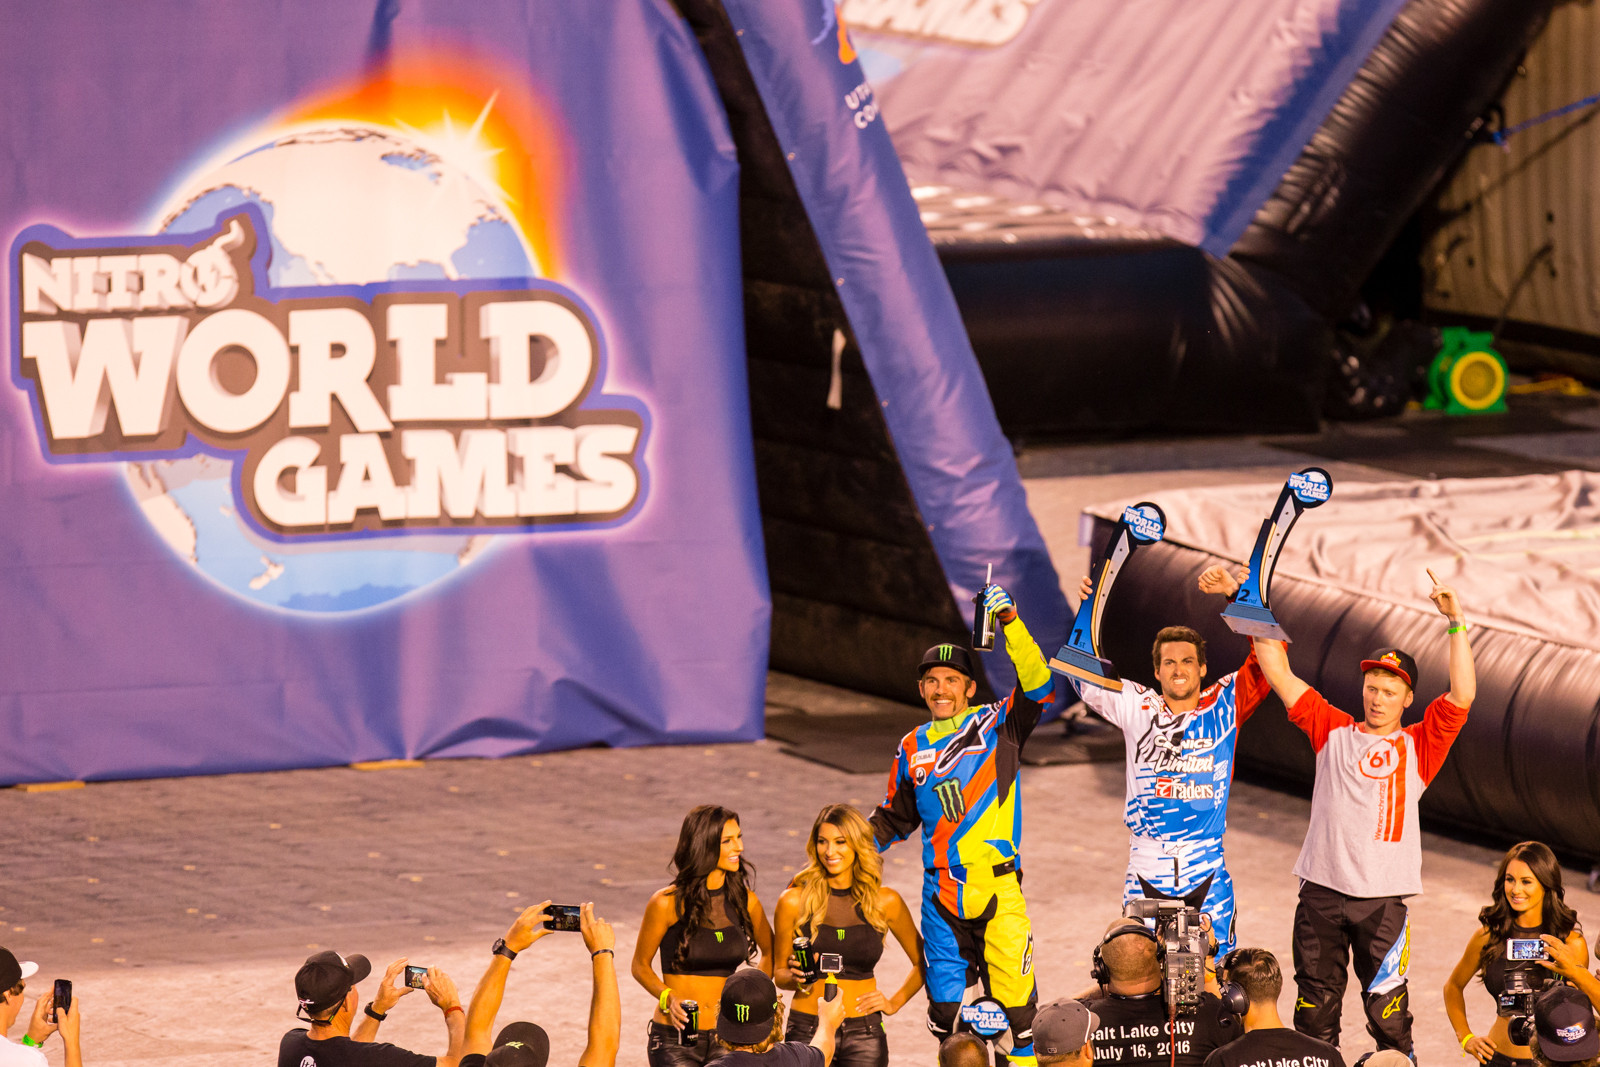 Best Trick Podium - 2016 Nitro World Games: FMX and Best Trick Finals Gallery - Motocross Pictures - Vital MX